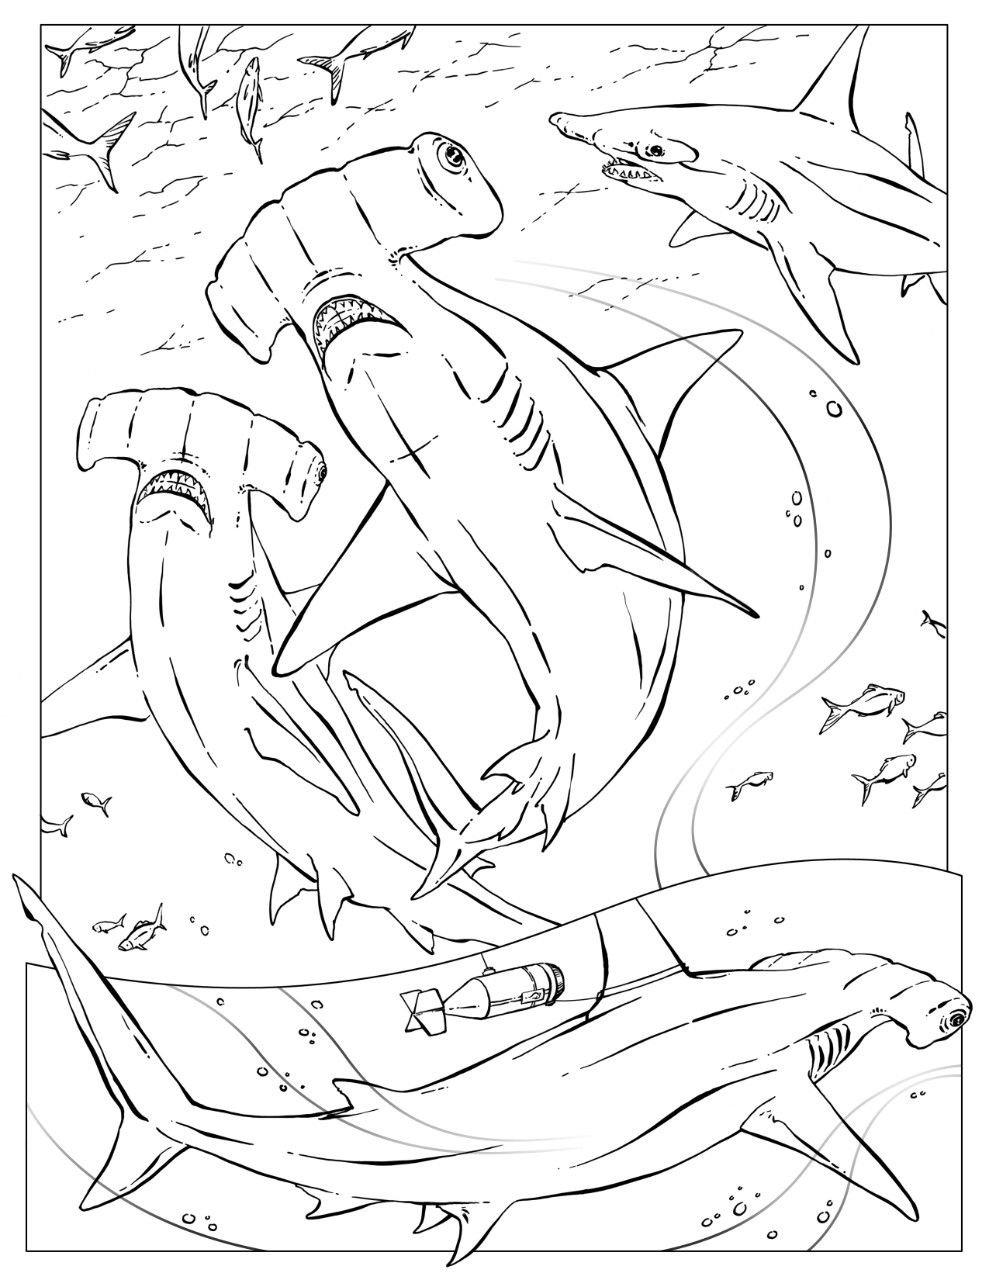 Coloring Book Animals A To I Shark Coloring Pages Coloring Pages Coloring Books